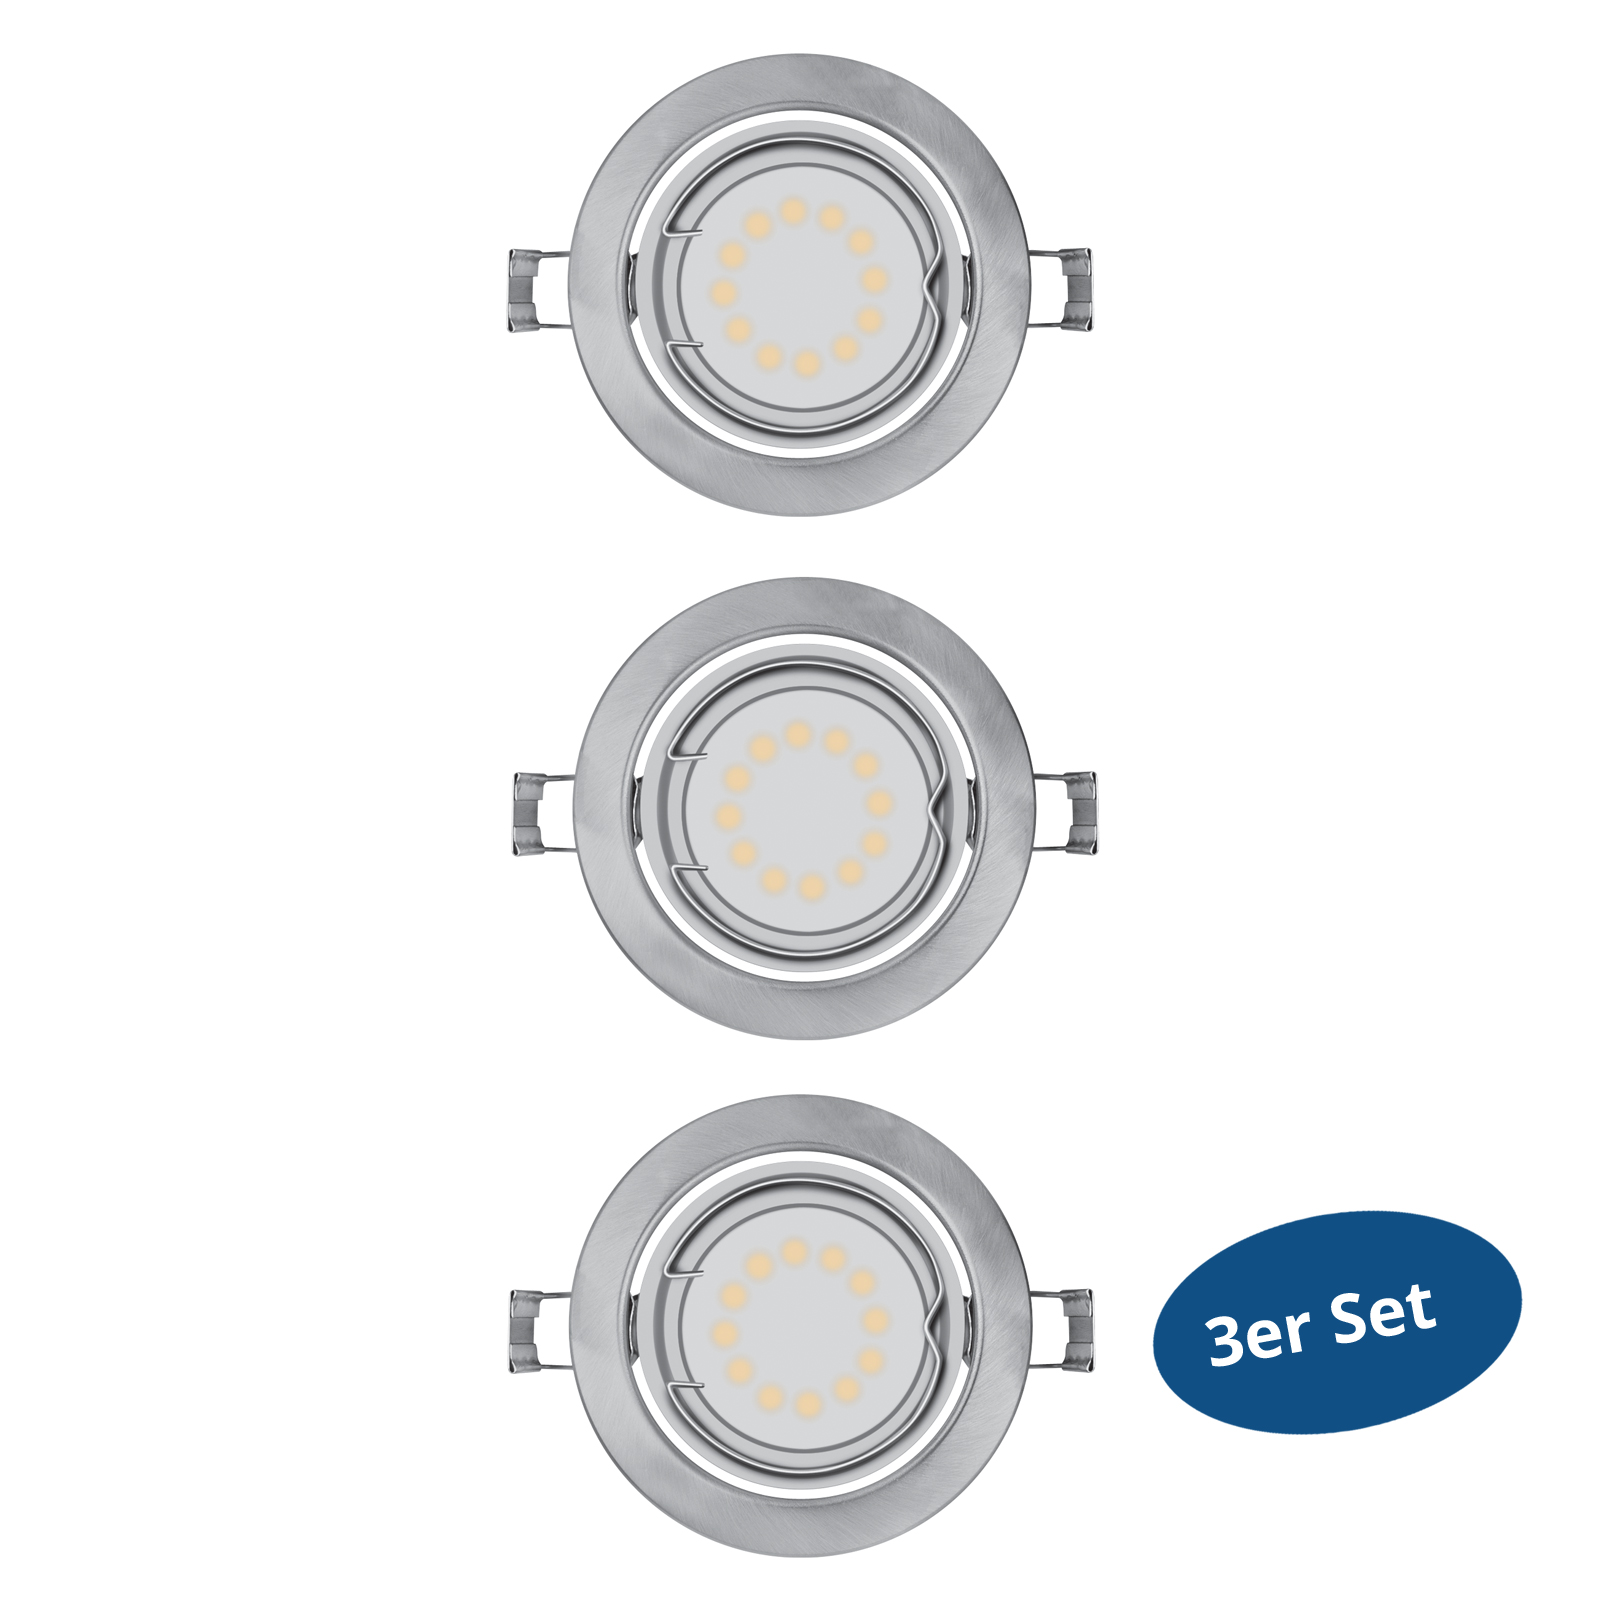 11019-3er-Set-OSRAM-LED-Downlight-mit-3W-GU10-Spot-230-lm-warmweiss-120-austauschbar-1 Wunderbar Led Mr11 Gu4 Warmweiss Dekorationen